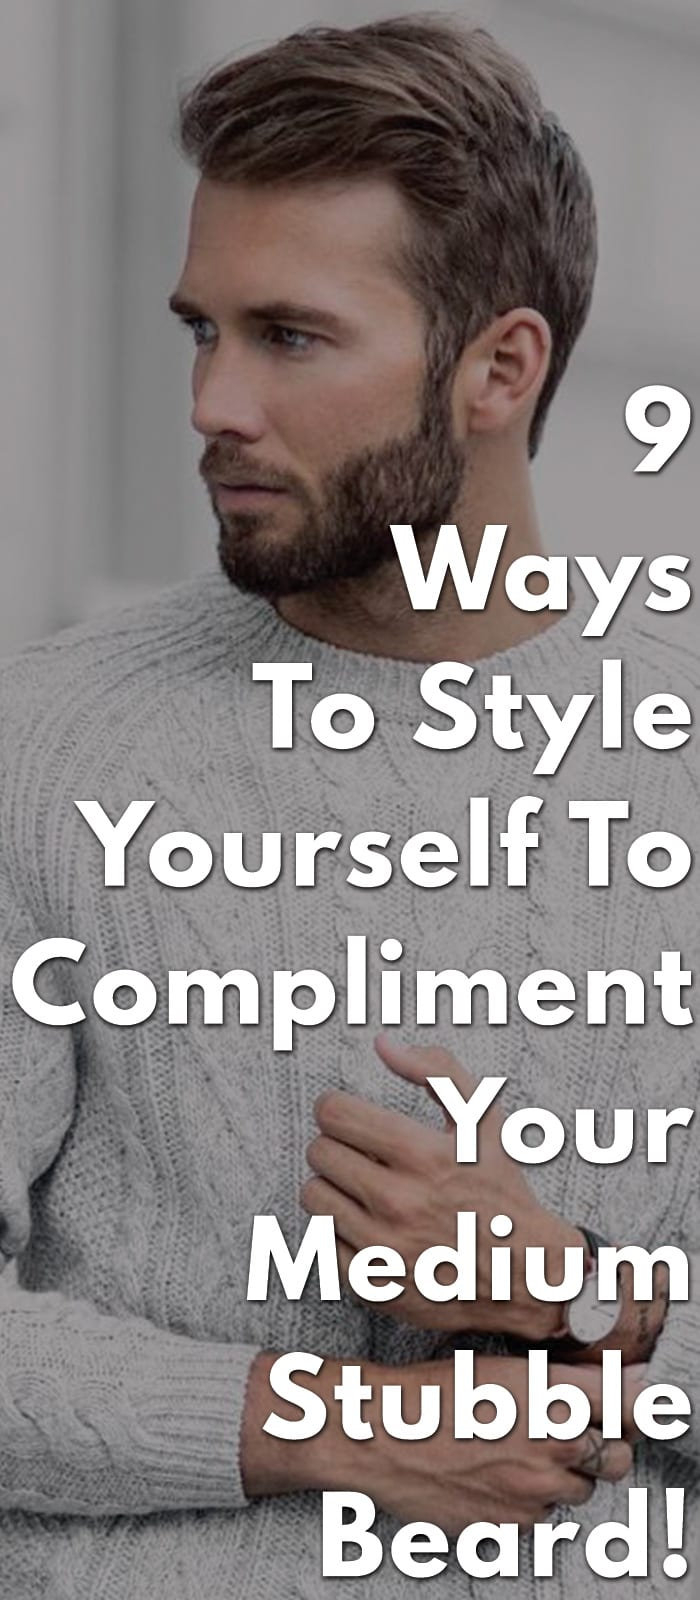 9-Ways-To-Style-Yourself-To-Compliment-Your-Medium-Stubble-Beard!..